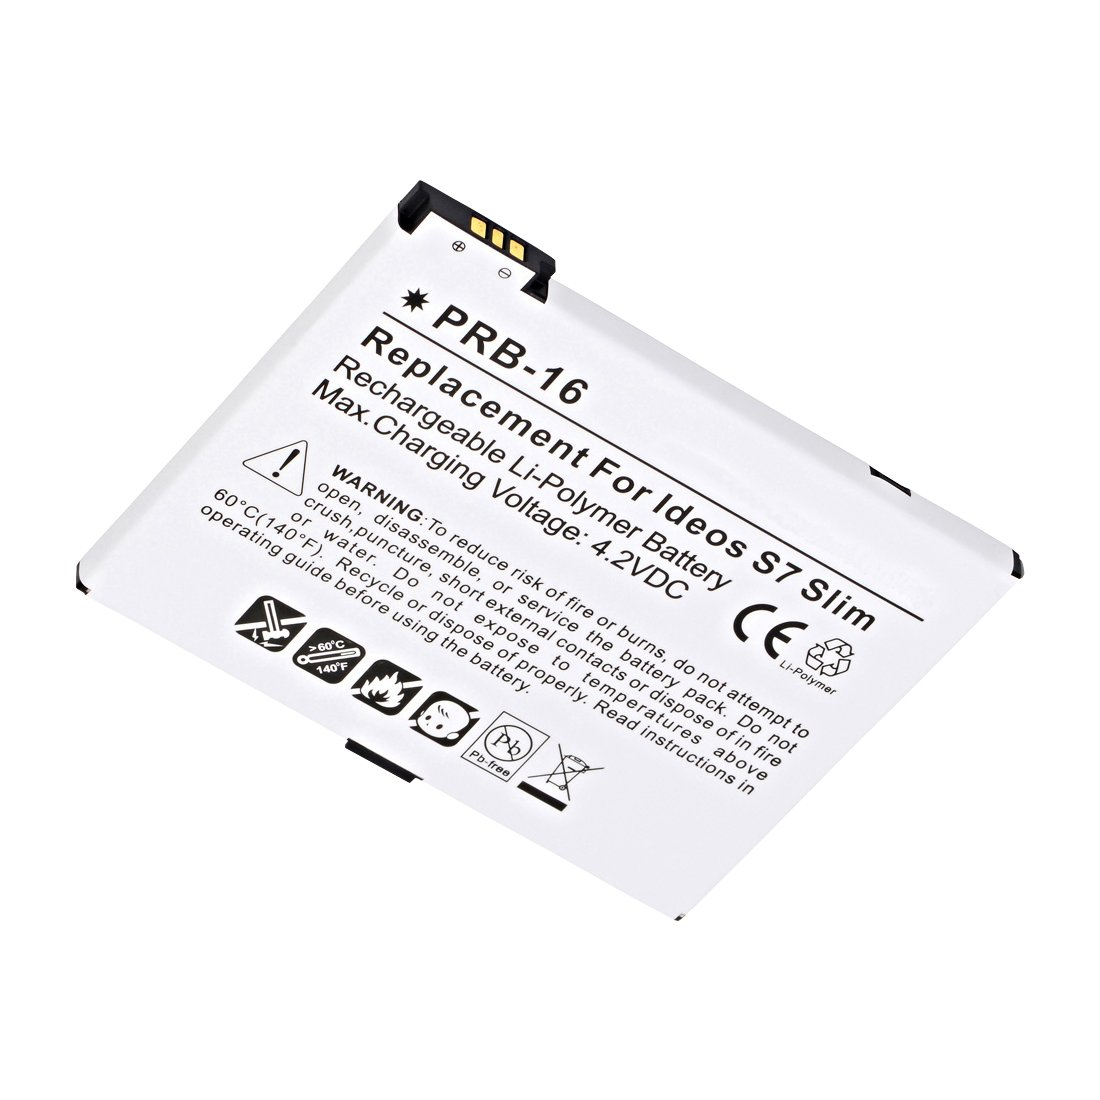 Replacement Huawei Ideos S7 Slim Tablet Battery